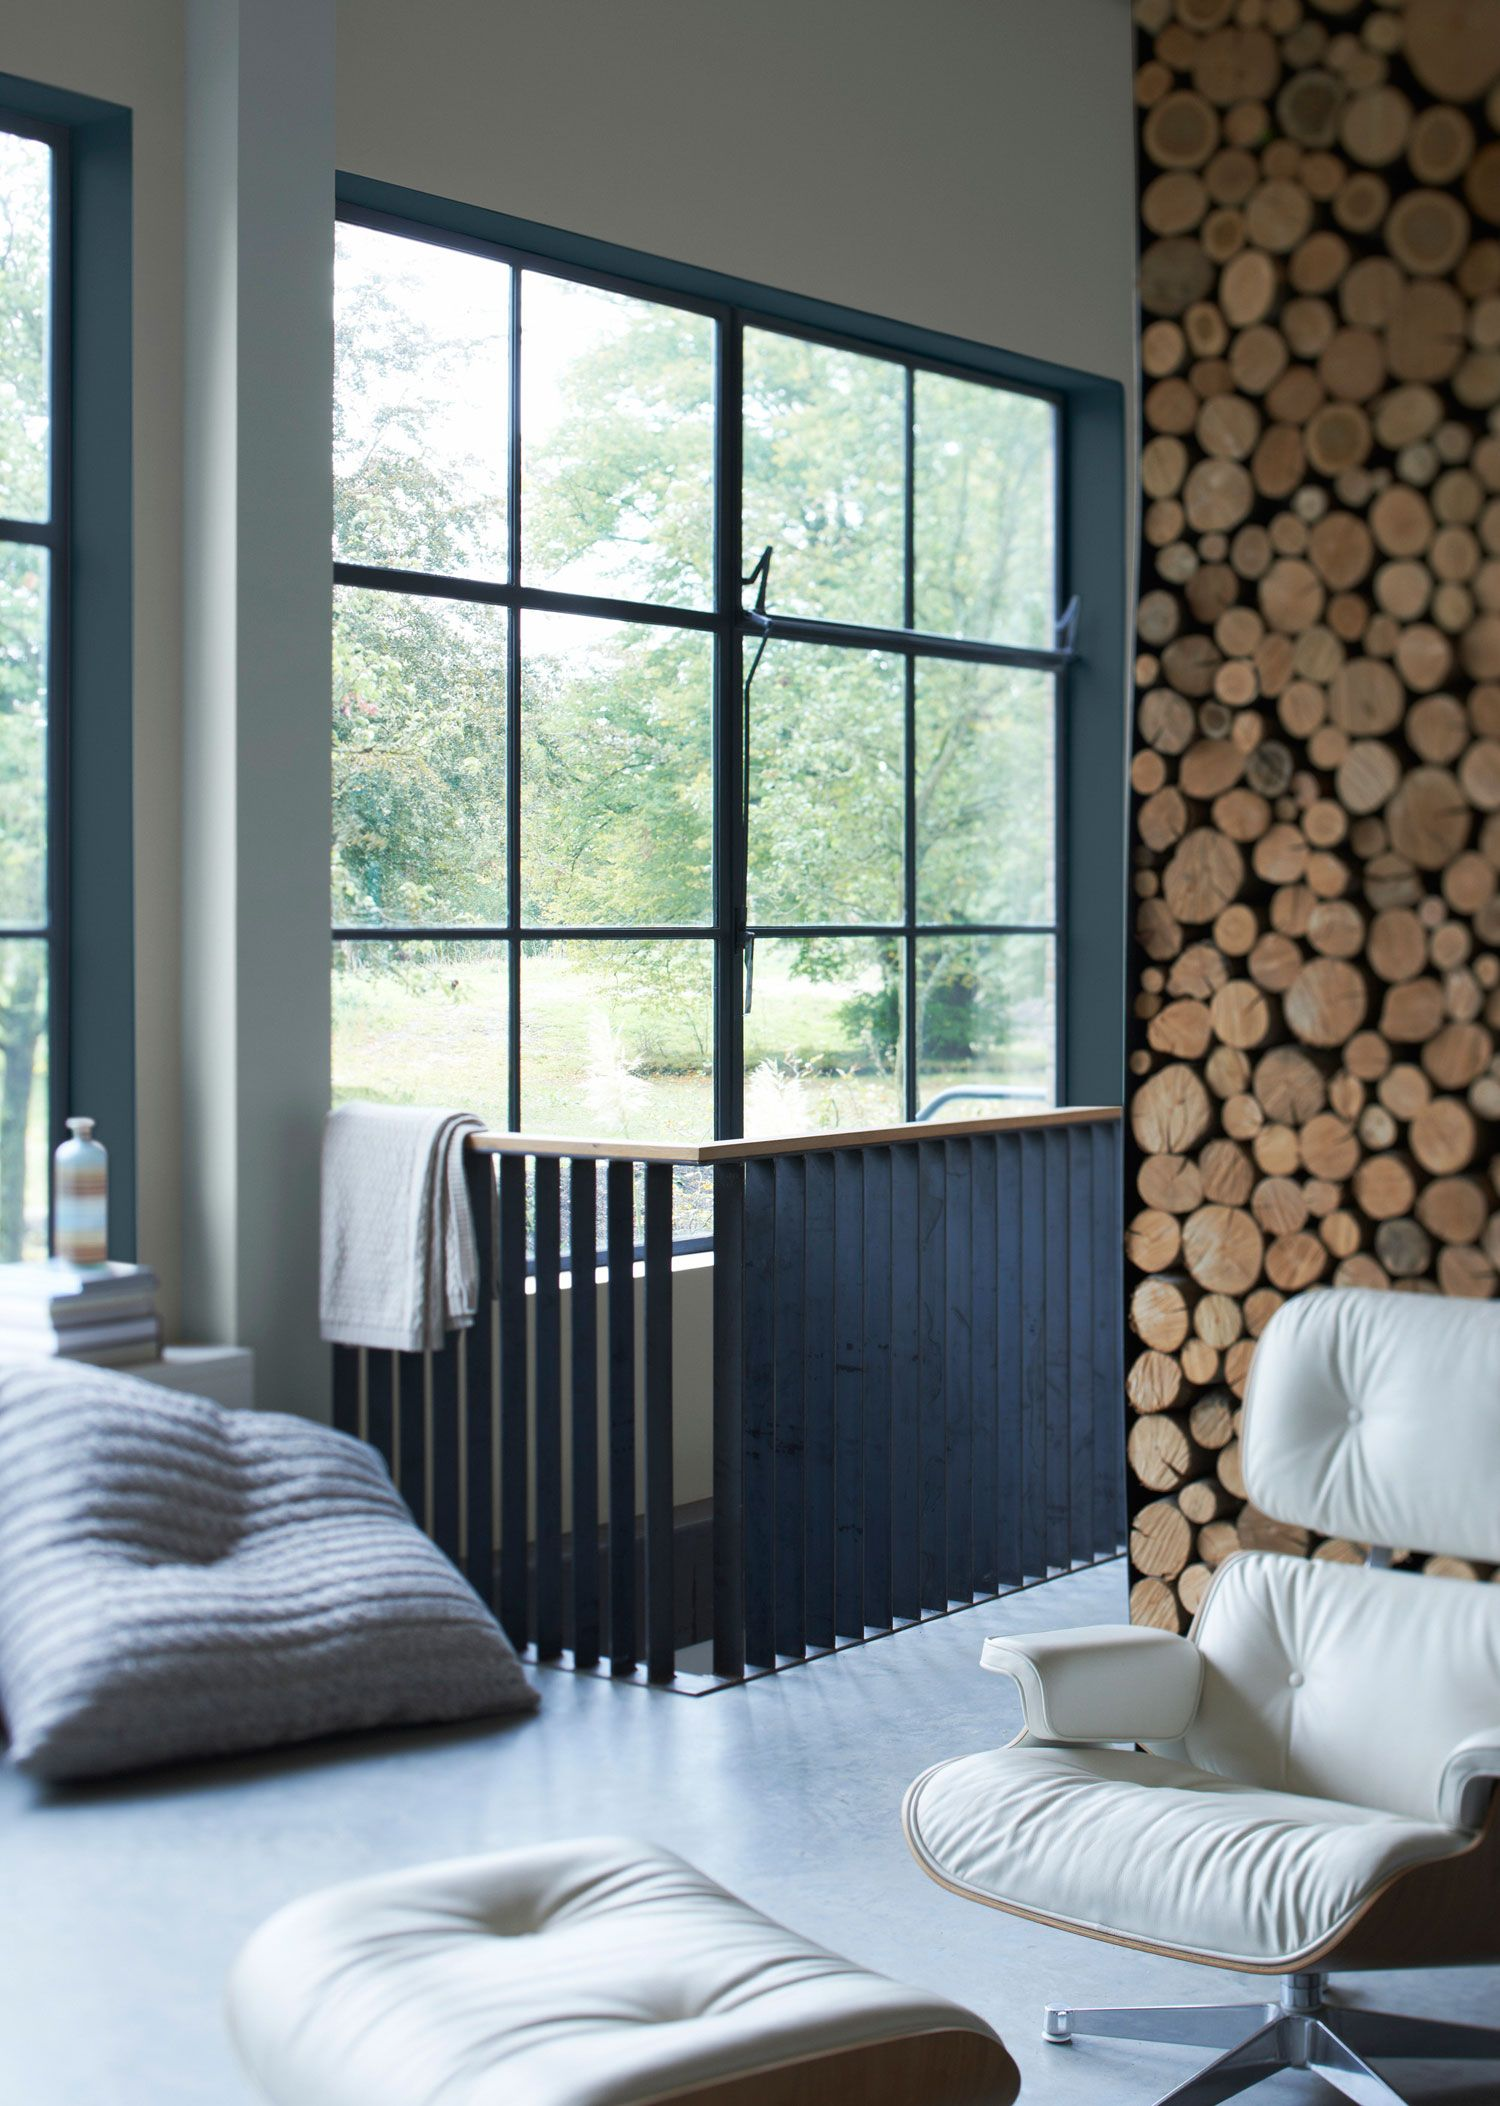 Titti Giovannoni Interior Design Levis Colores Del Mundo Balanced Finland Colors